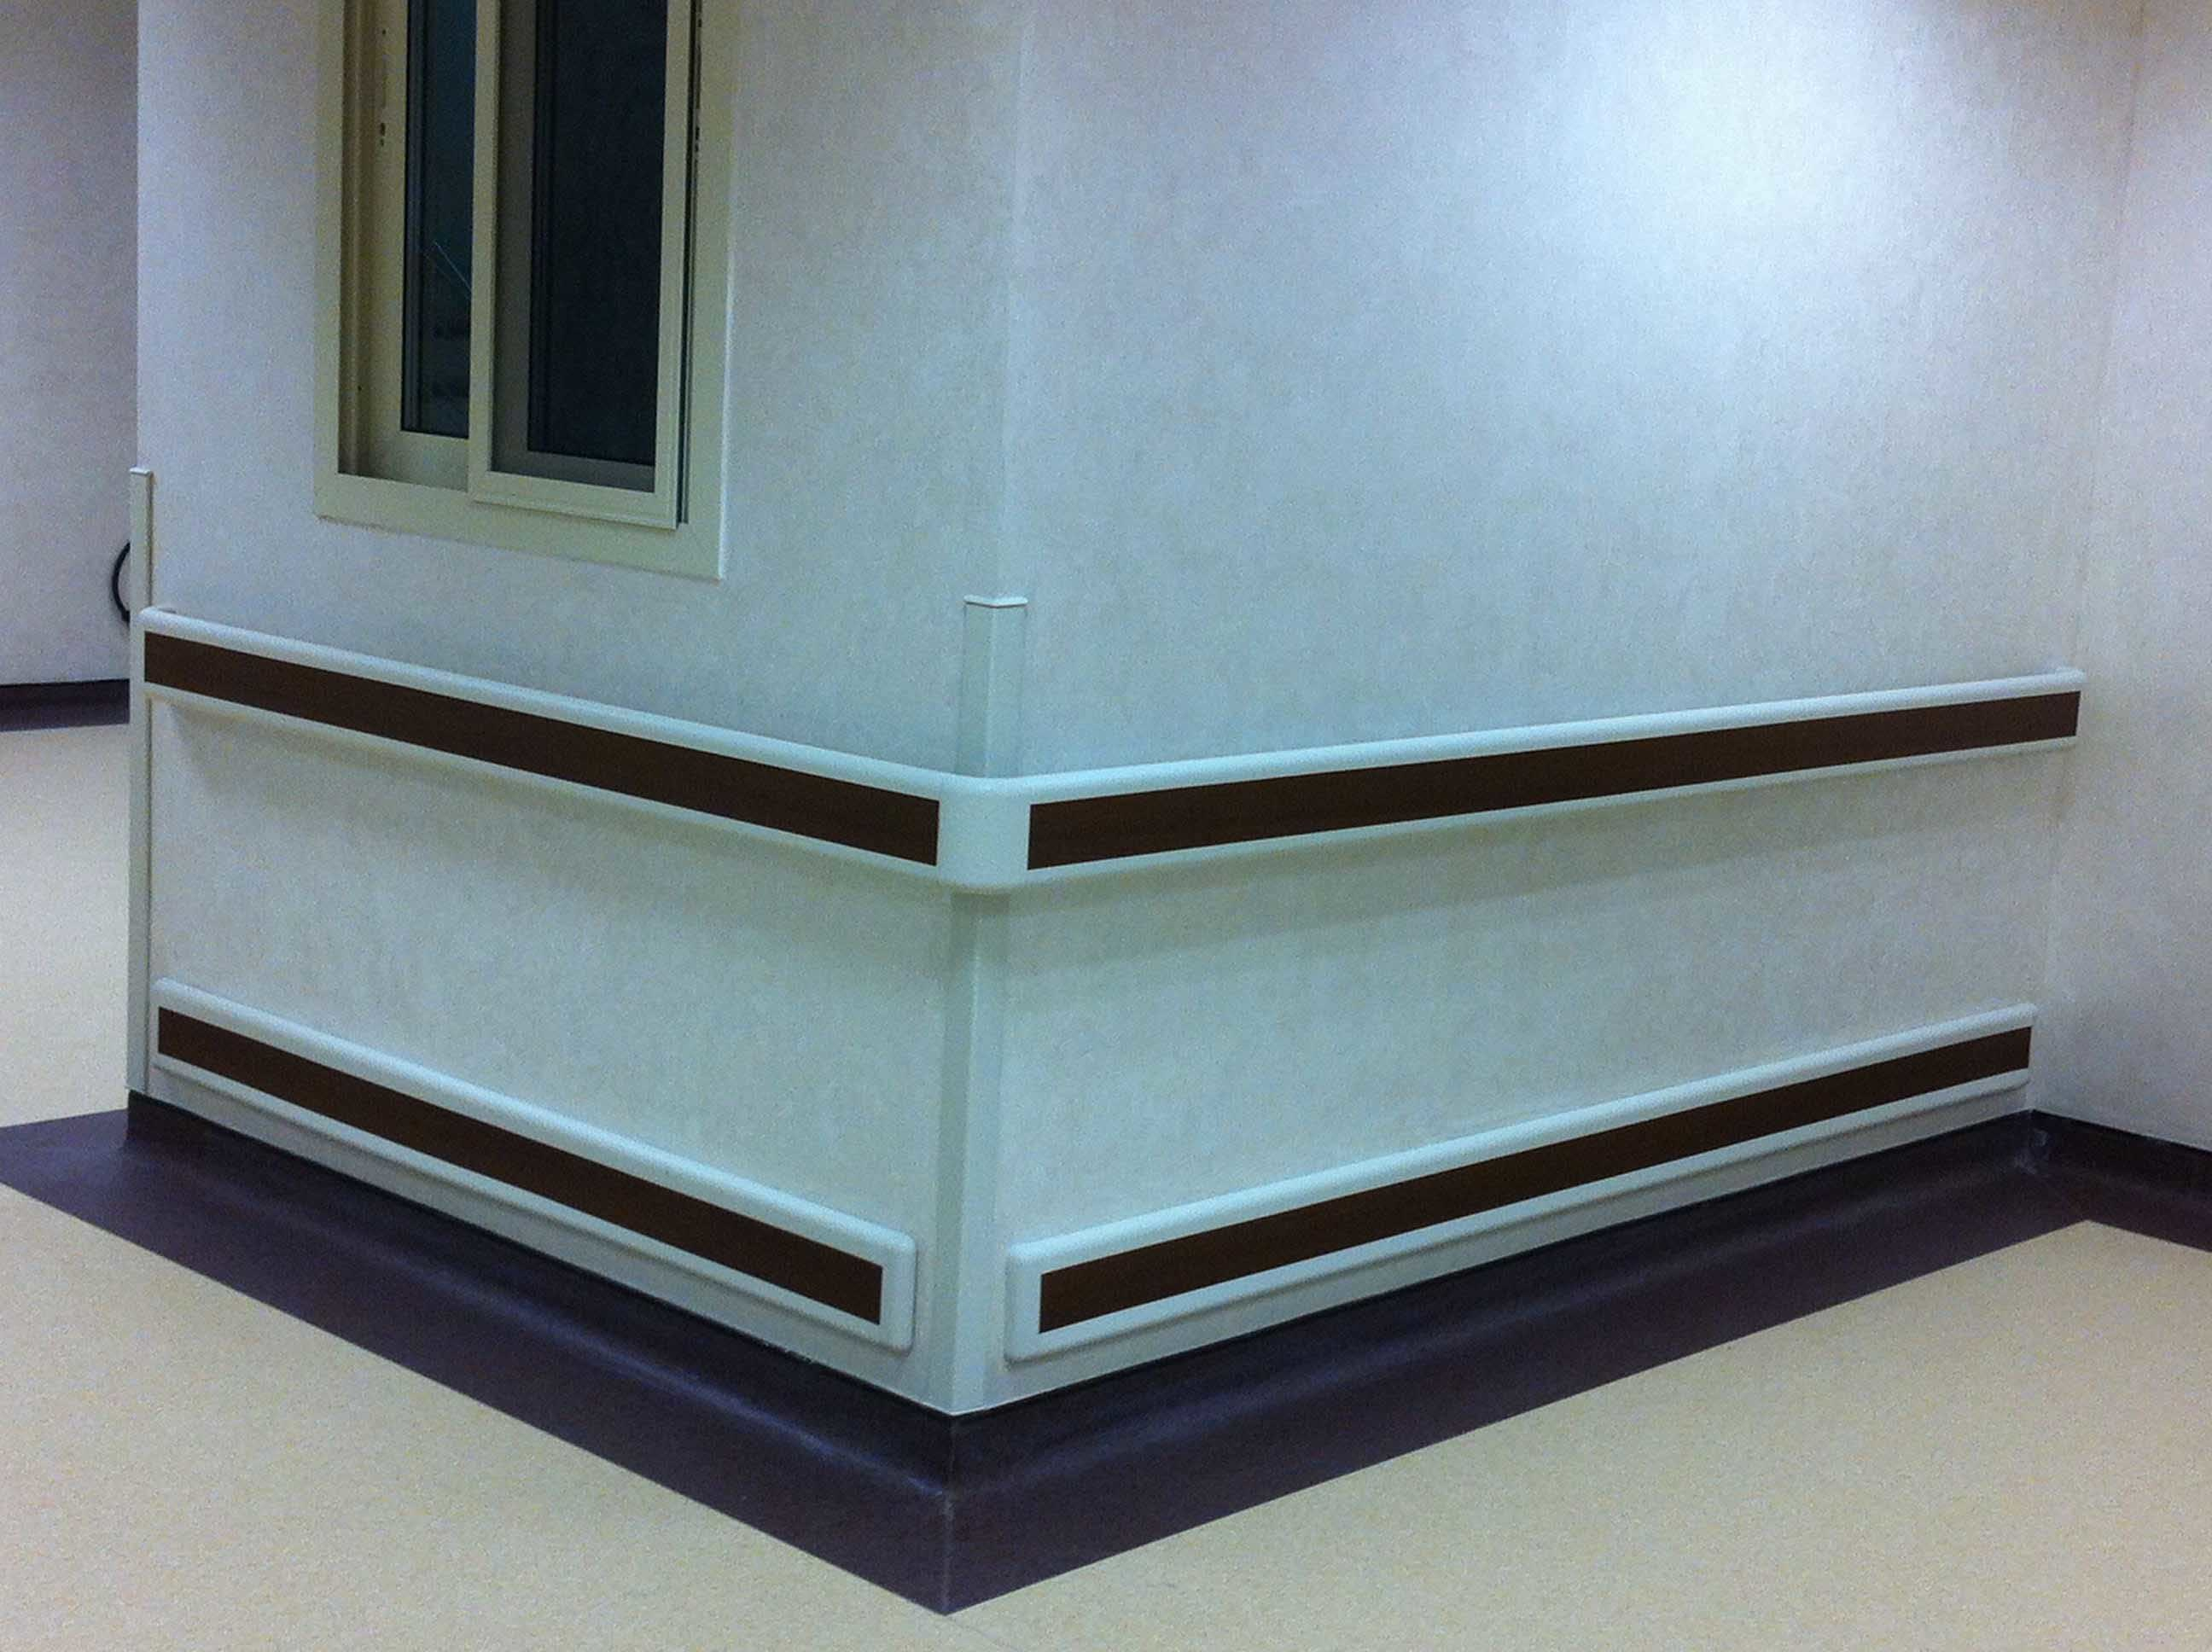 China Vinyl Handrails Lowes Pawling Corner Guards - China Hospital ...